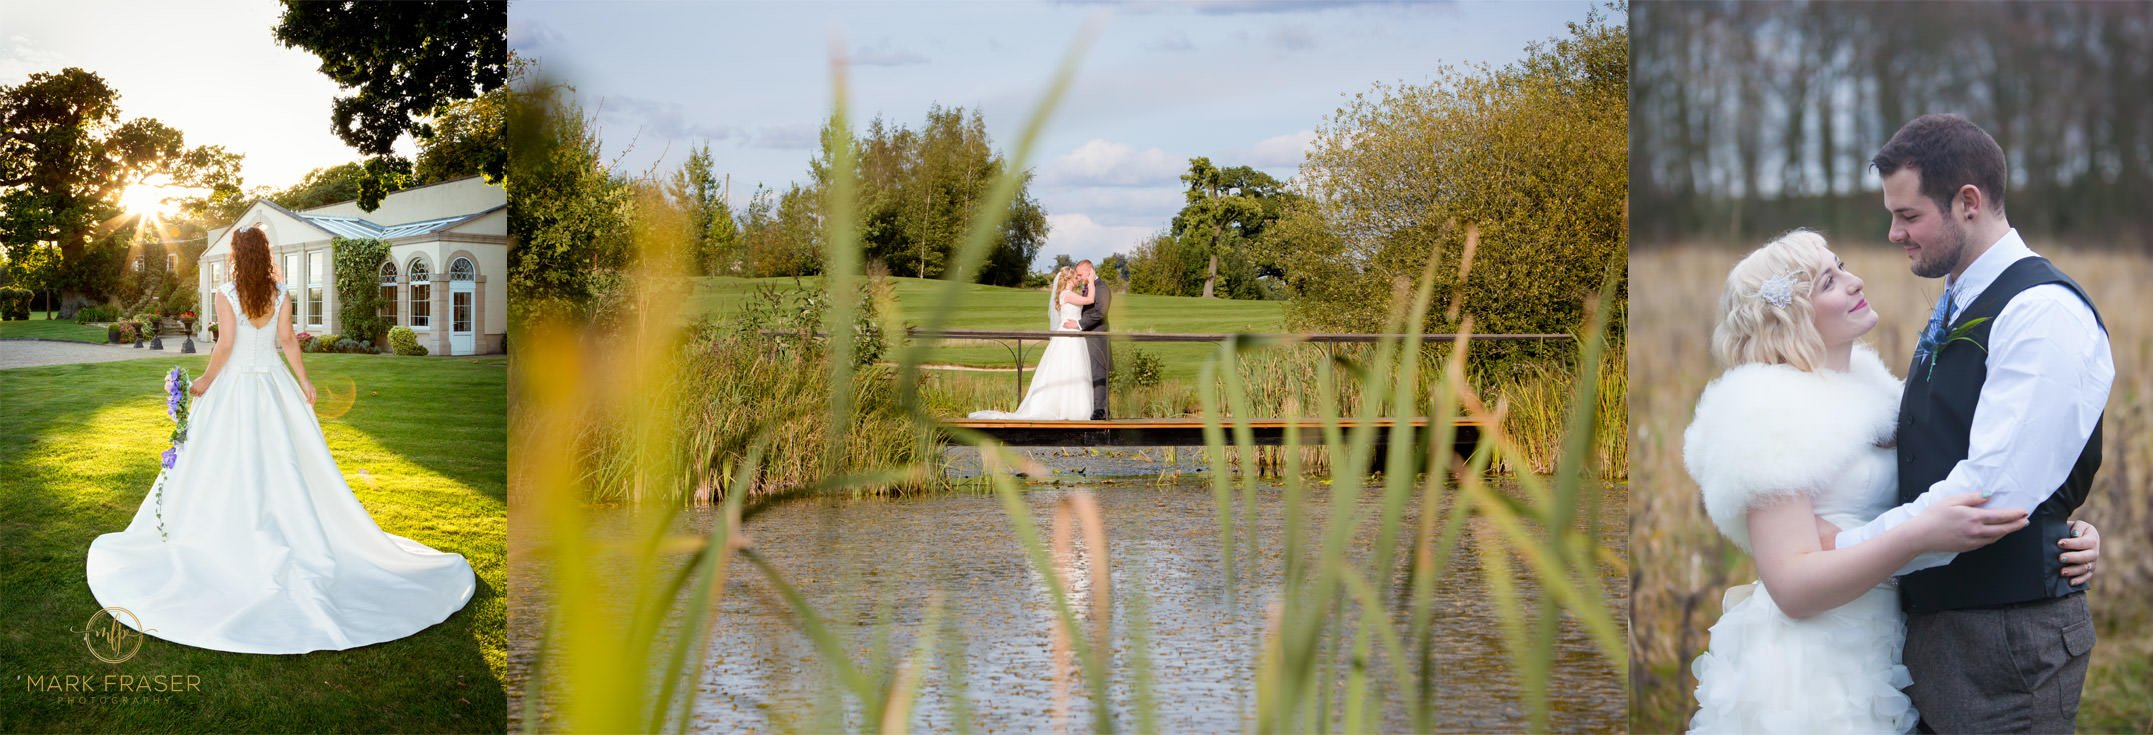 Wedding Photography Whittlebury Park